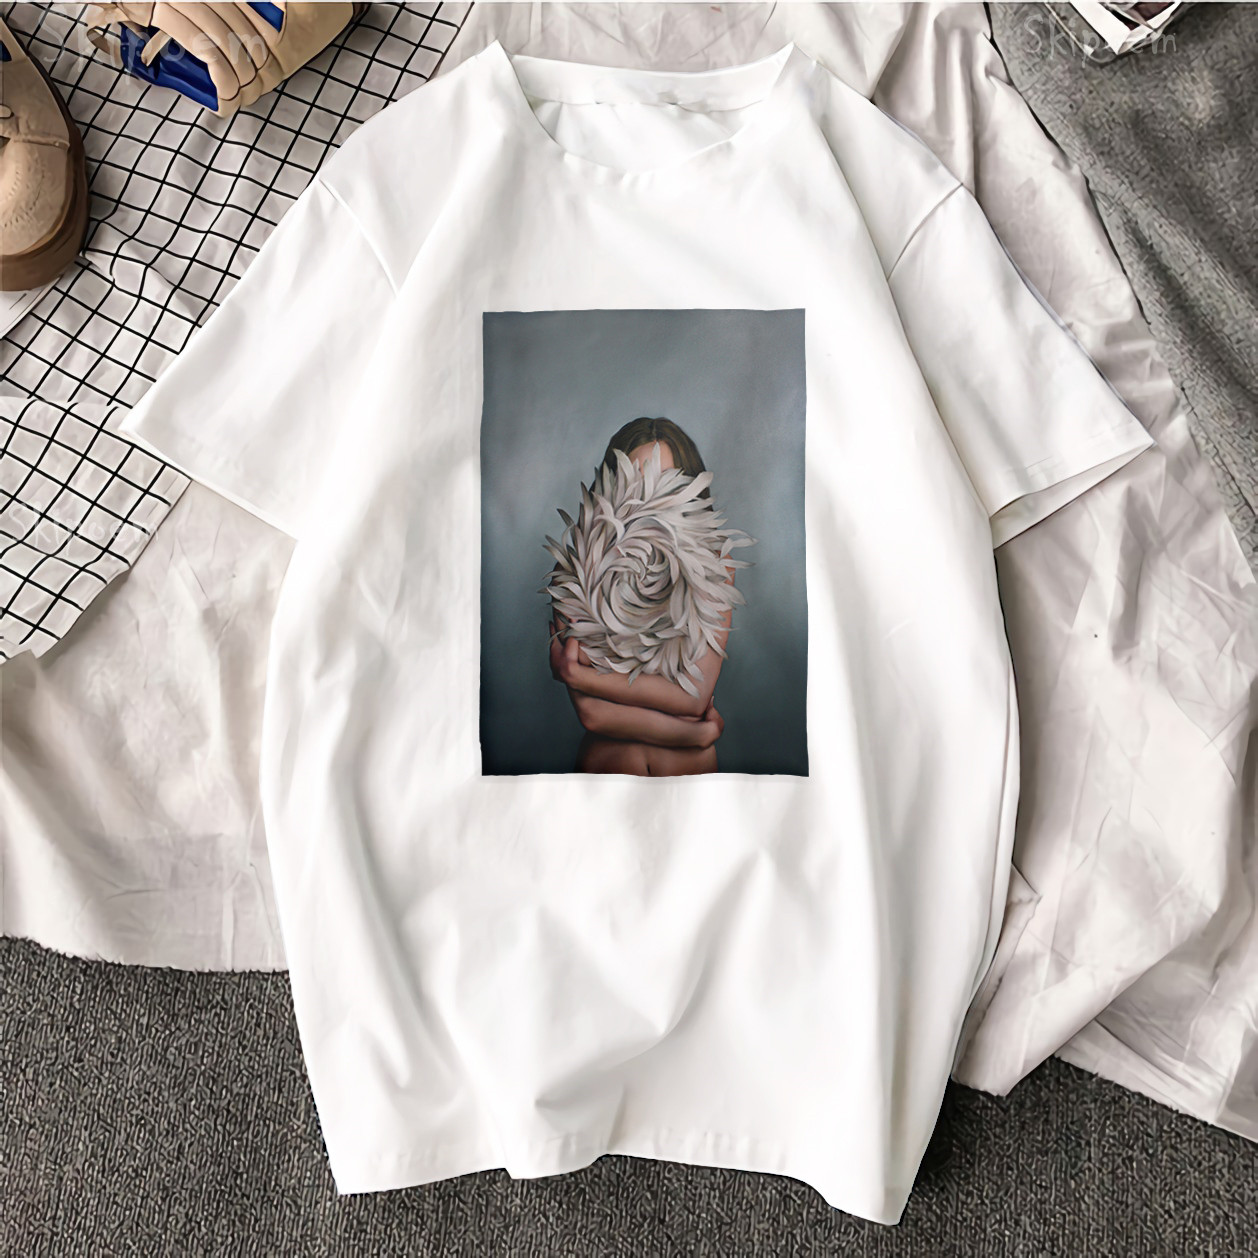 New Cotton Aesthetics T shirt Sexy Flowers Feather Printed Fashion Casual Couple T Shirt 10